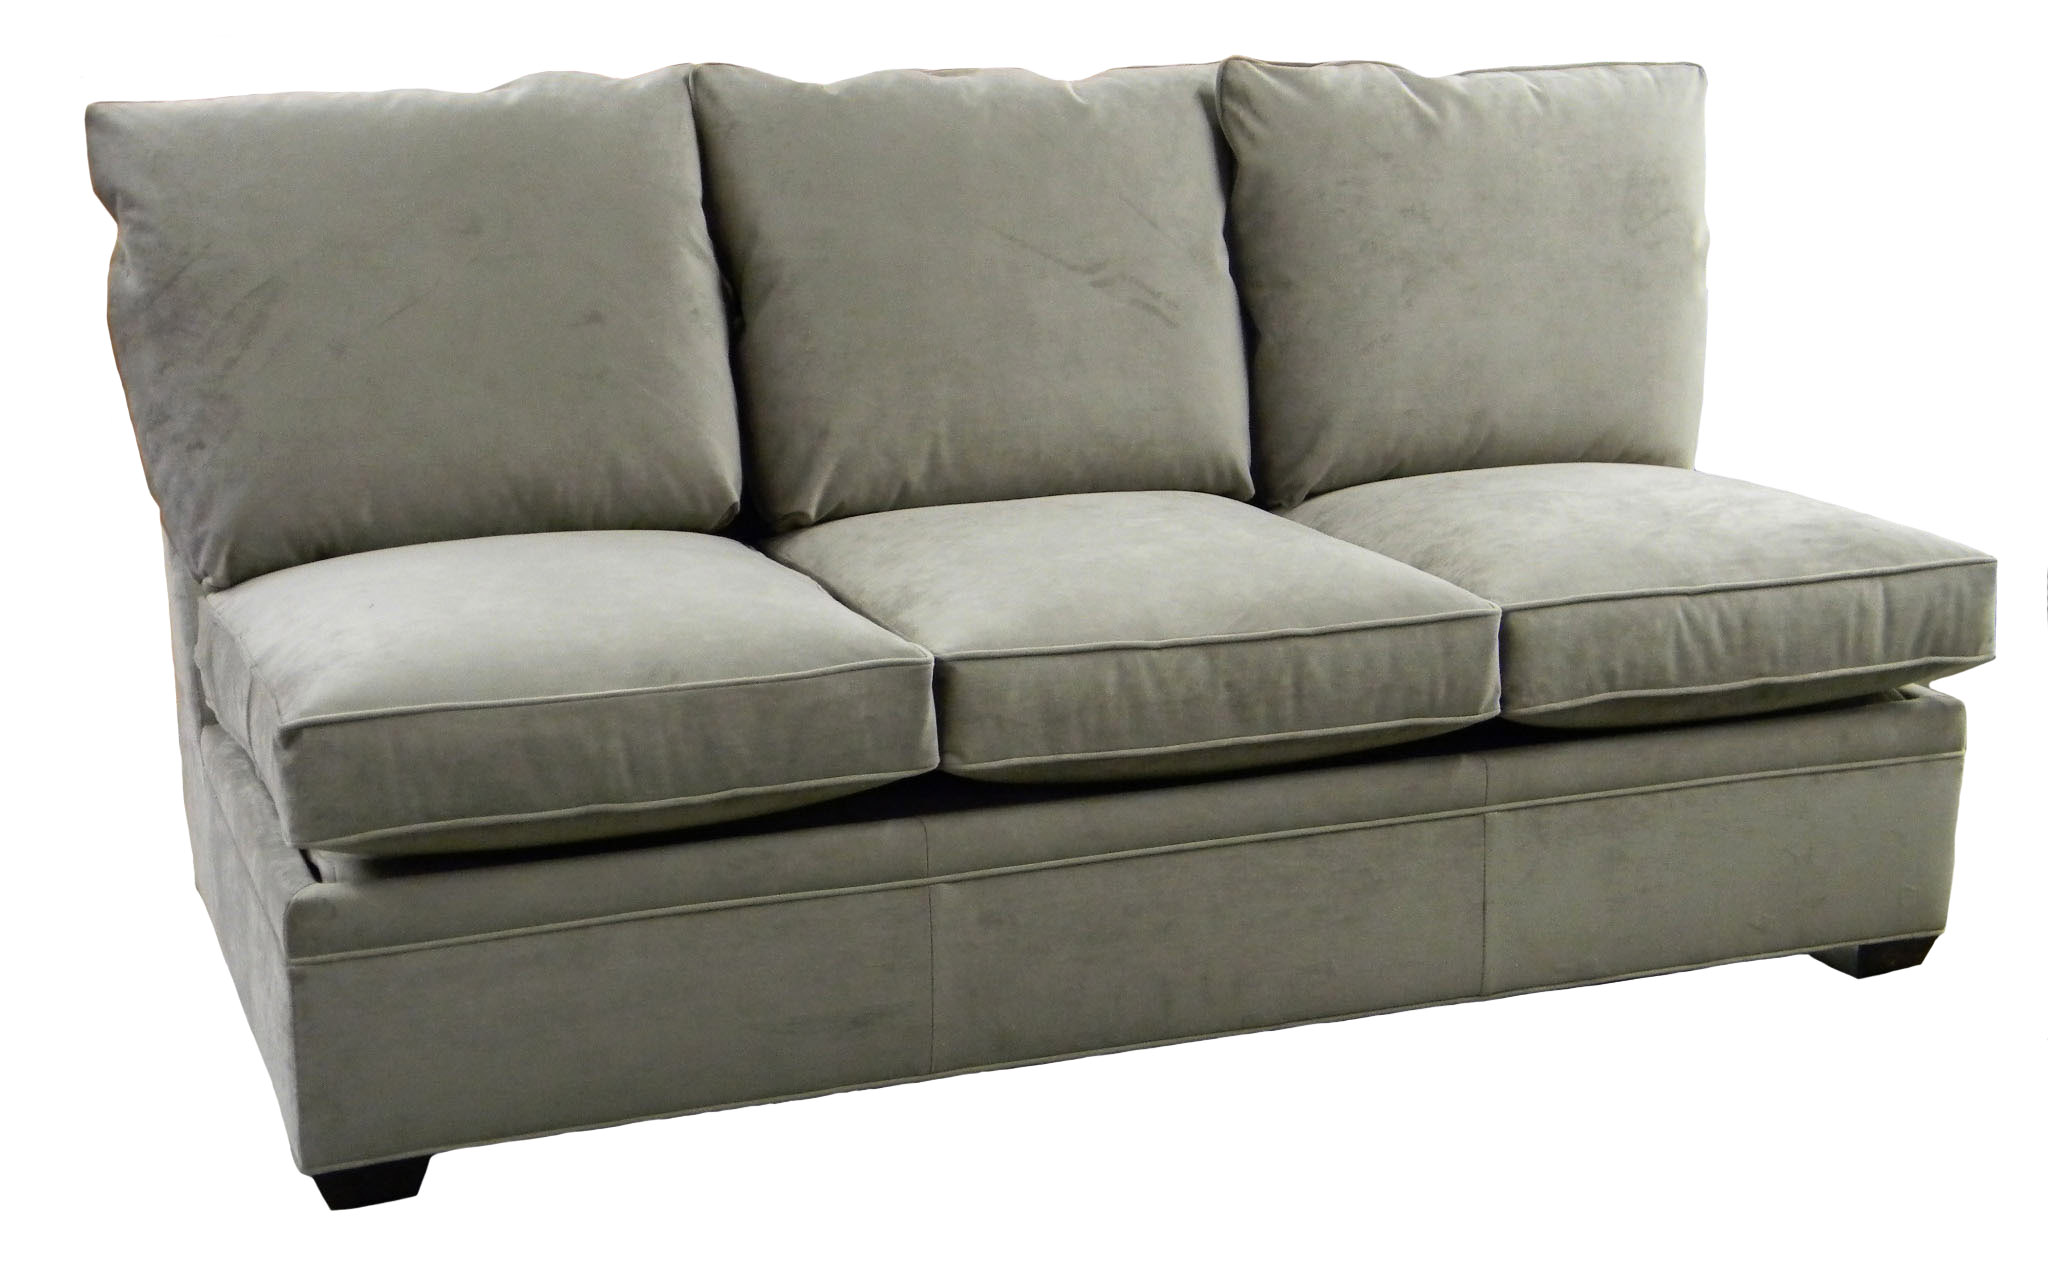 Cool Byron Sectional Armless Queen Sleeper Sofa Air Mattress Camellatalisay Diy Chair Ideas Camellatalisaycom